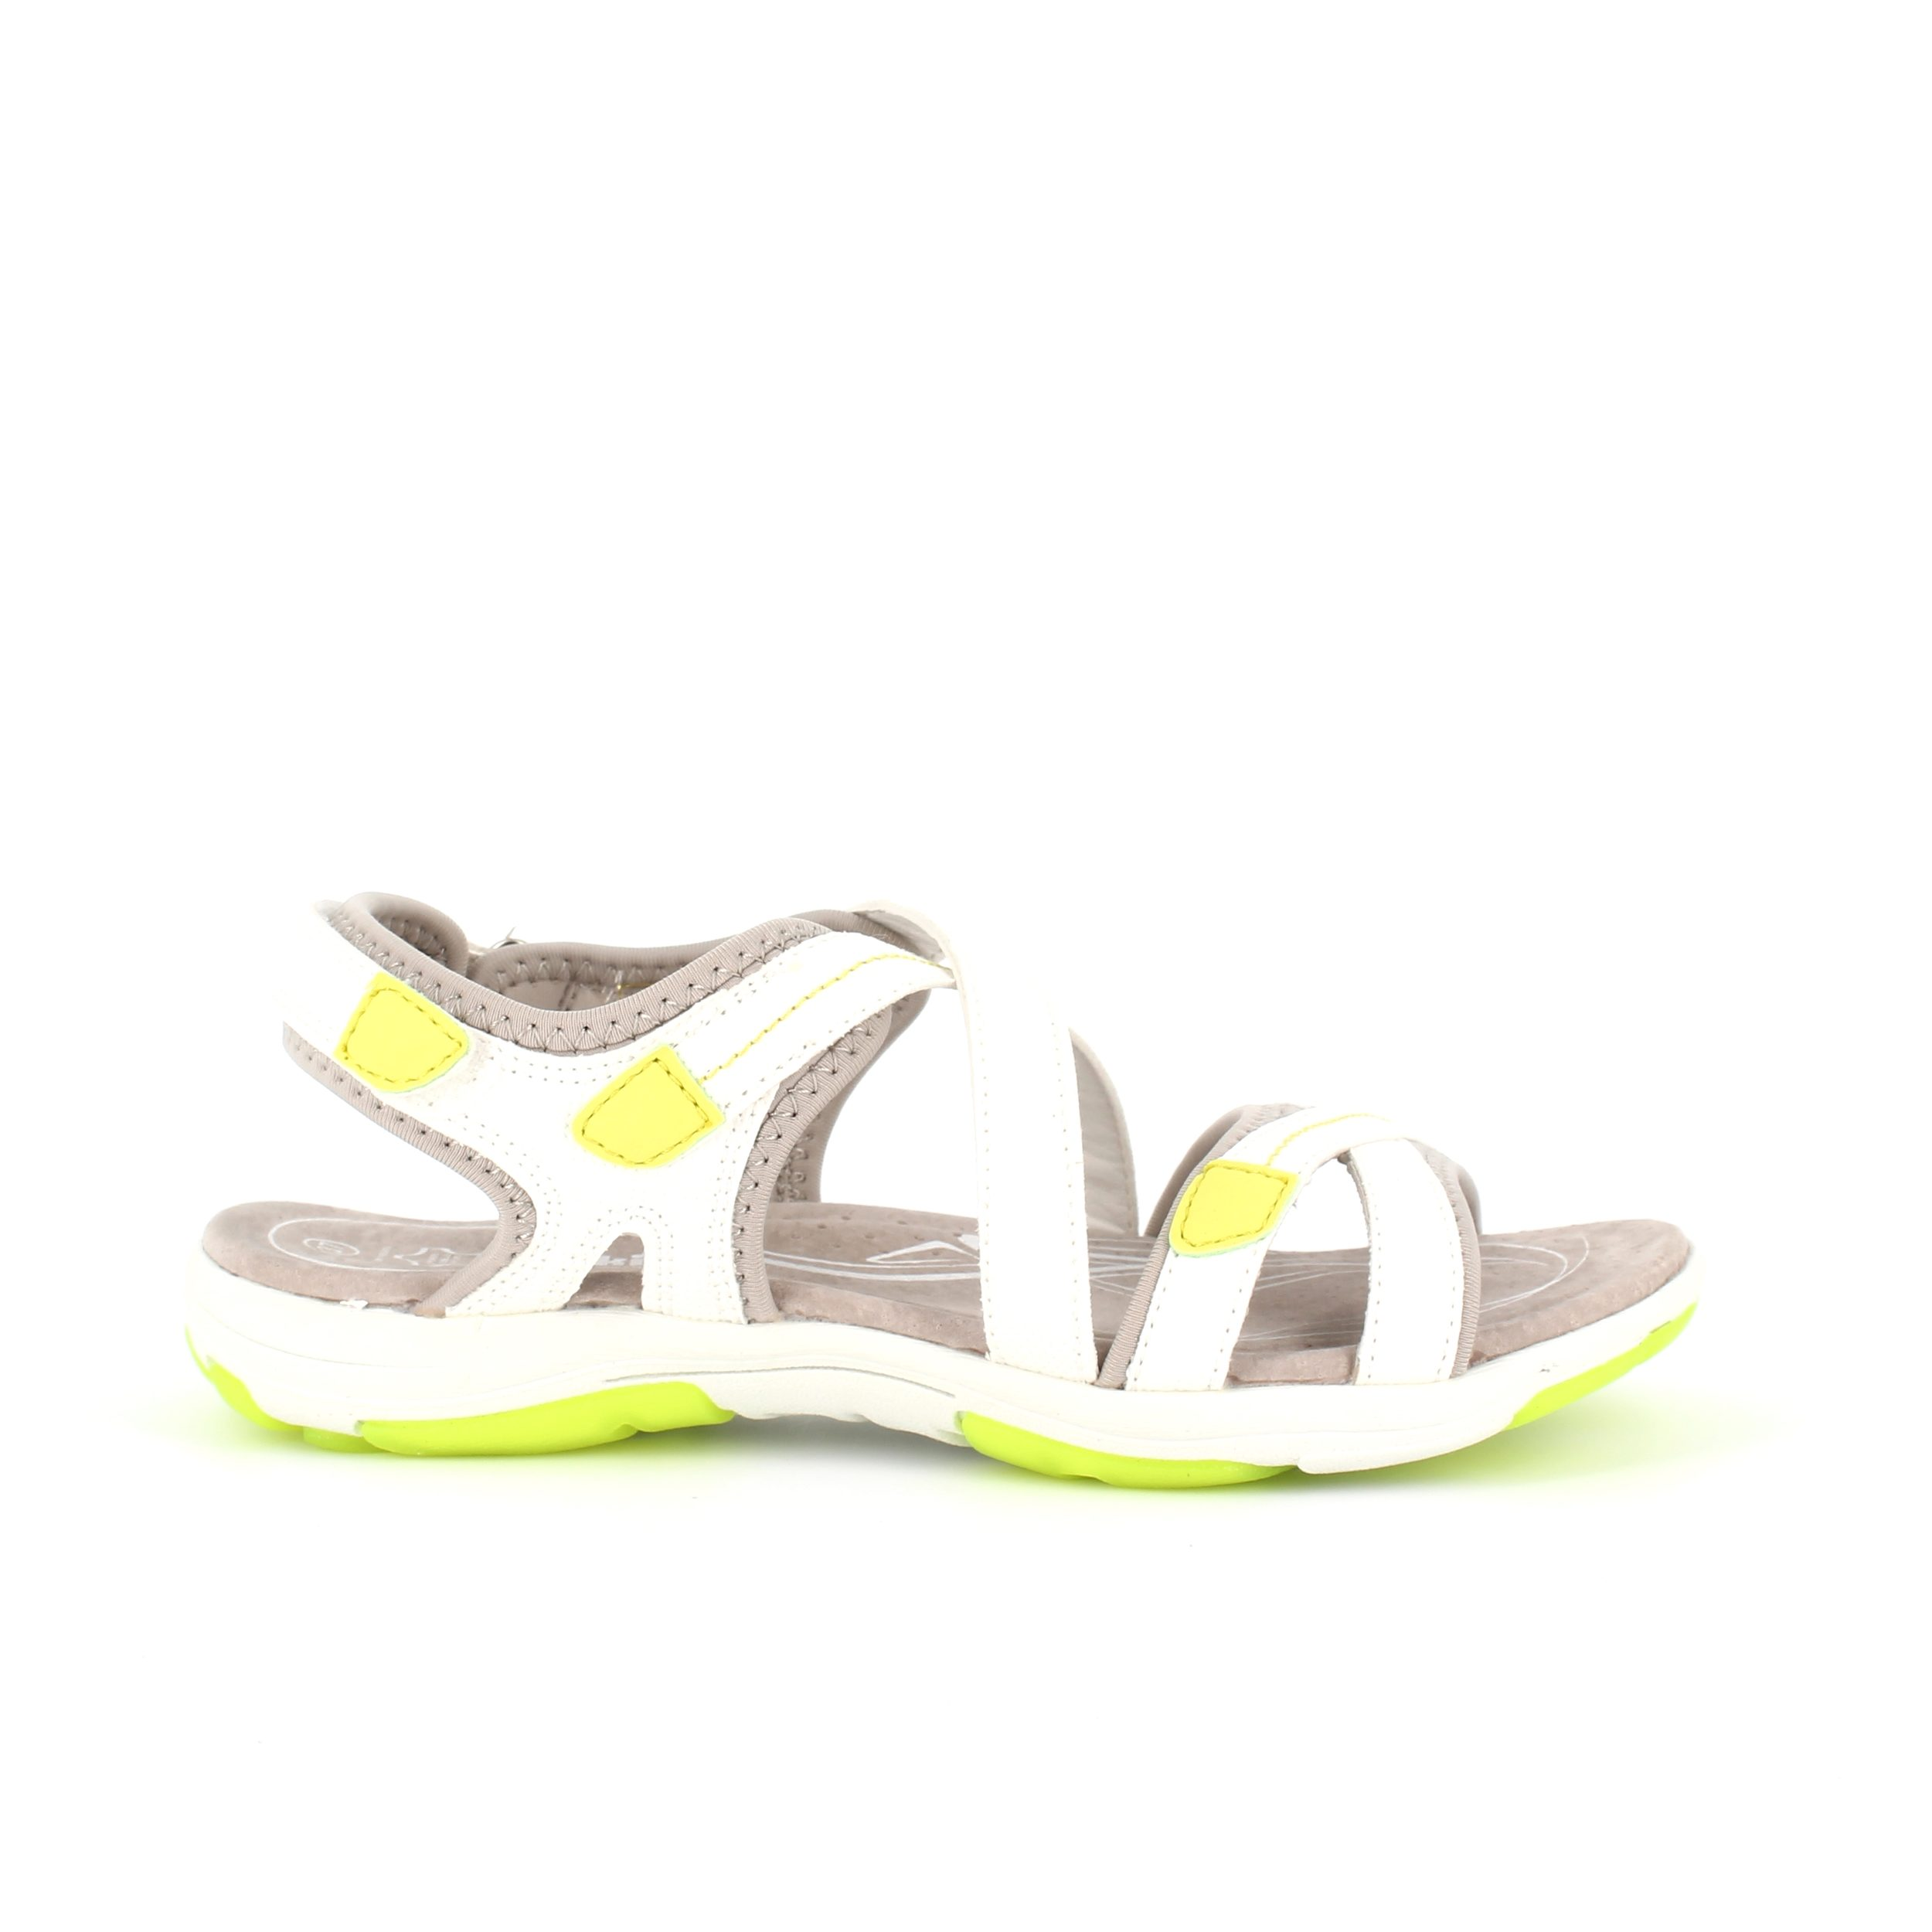 Image of   Smart sandal i frisk hvid og lime - 37